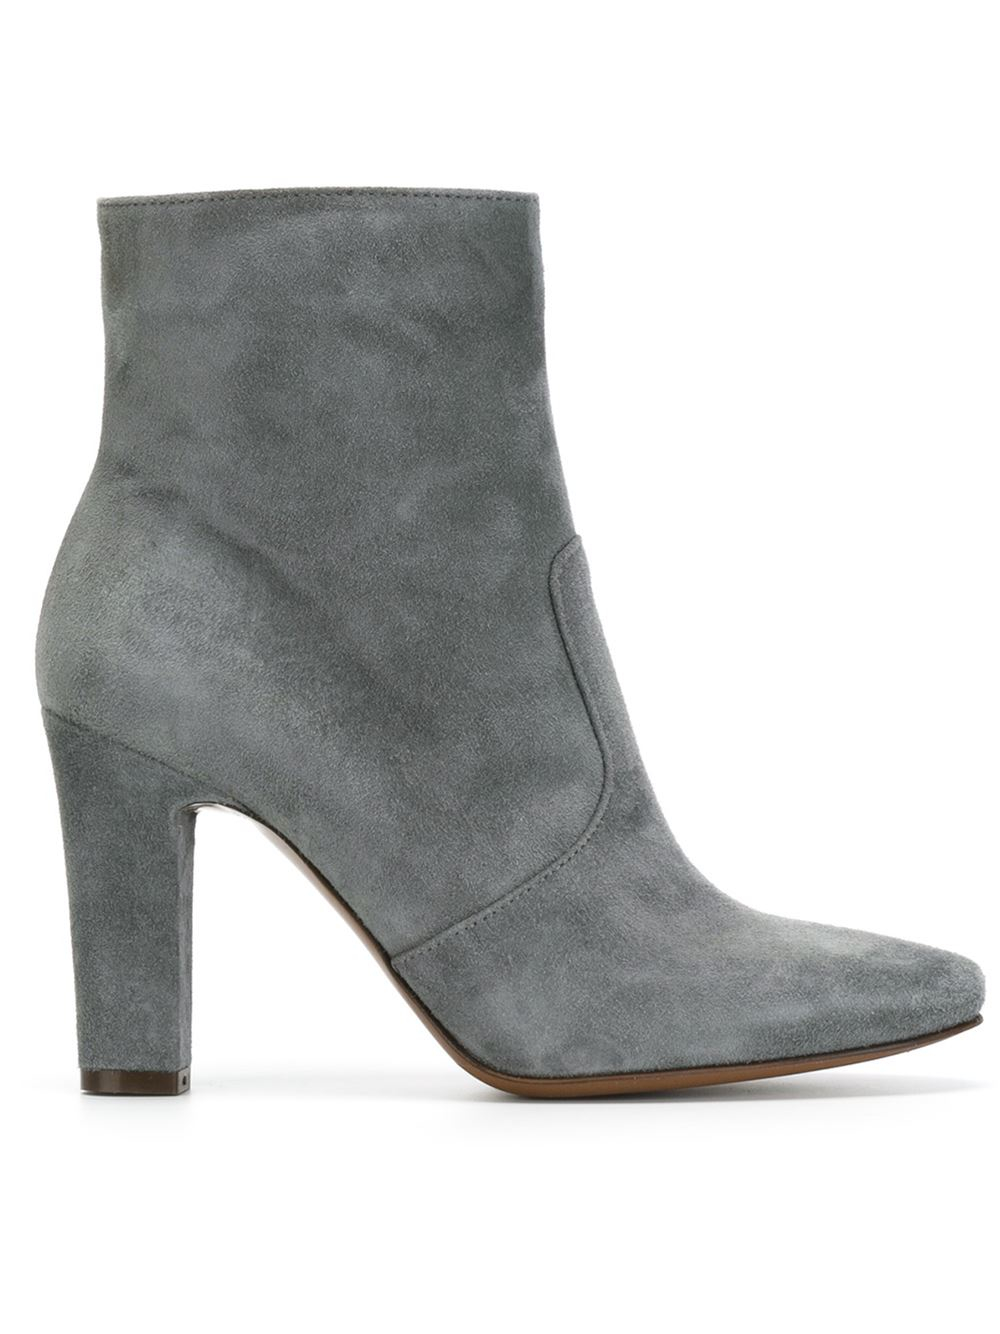 Lyst L Autre Chose Chunky Heel Ankle Boots In Gray